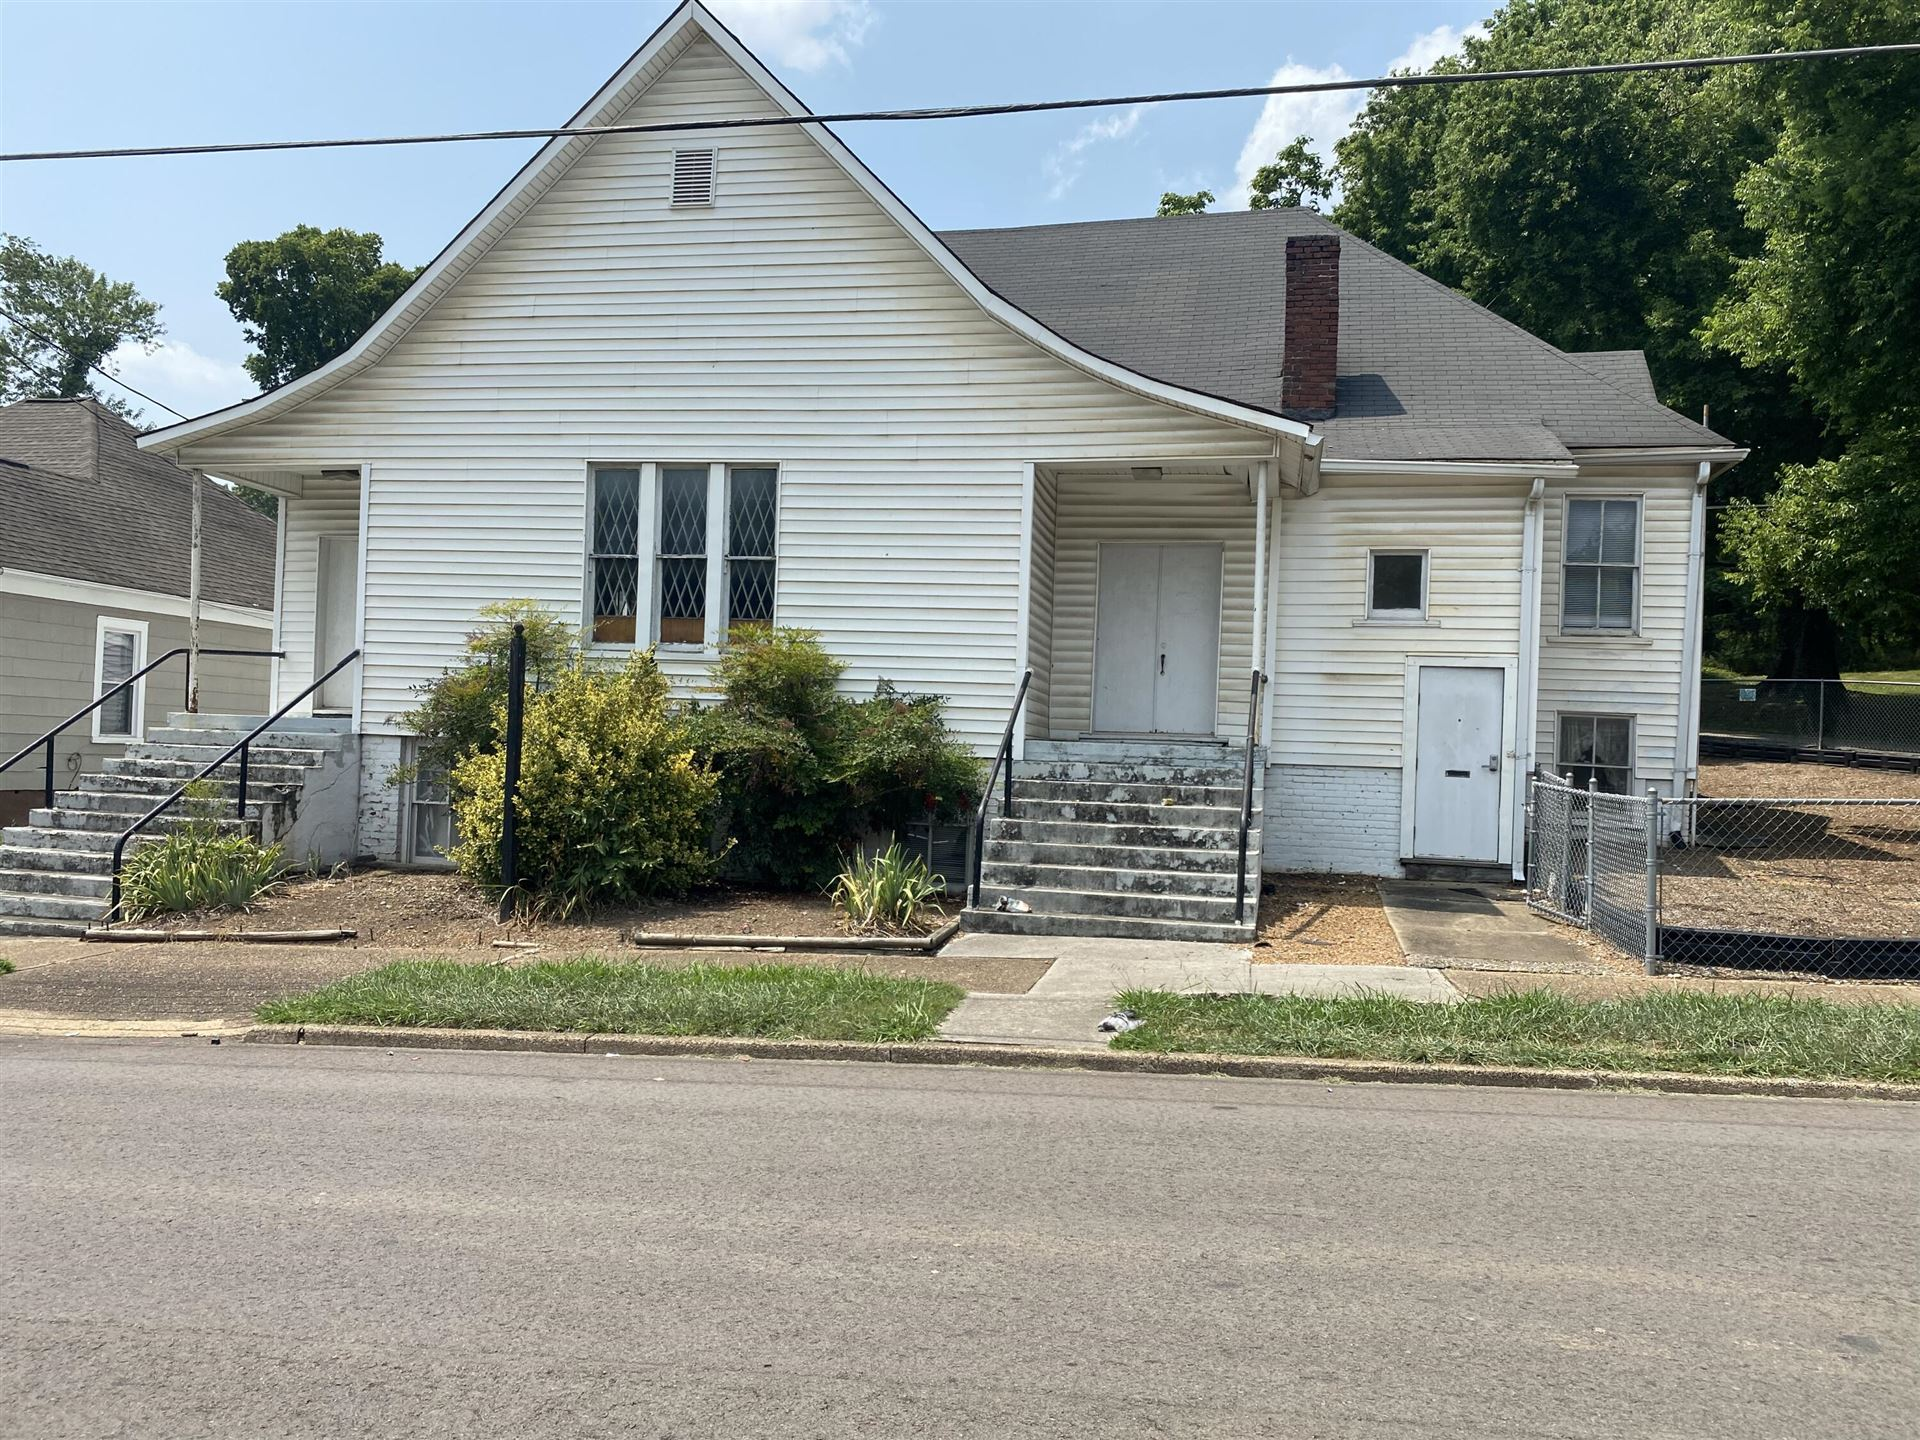 Photo of 2201 Virginia Ave, Knoxville, TN 37921 (MLS # 1162251)